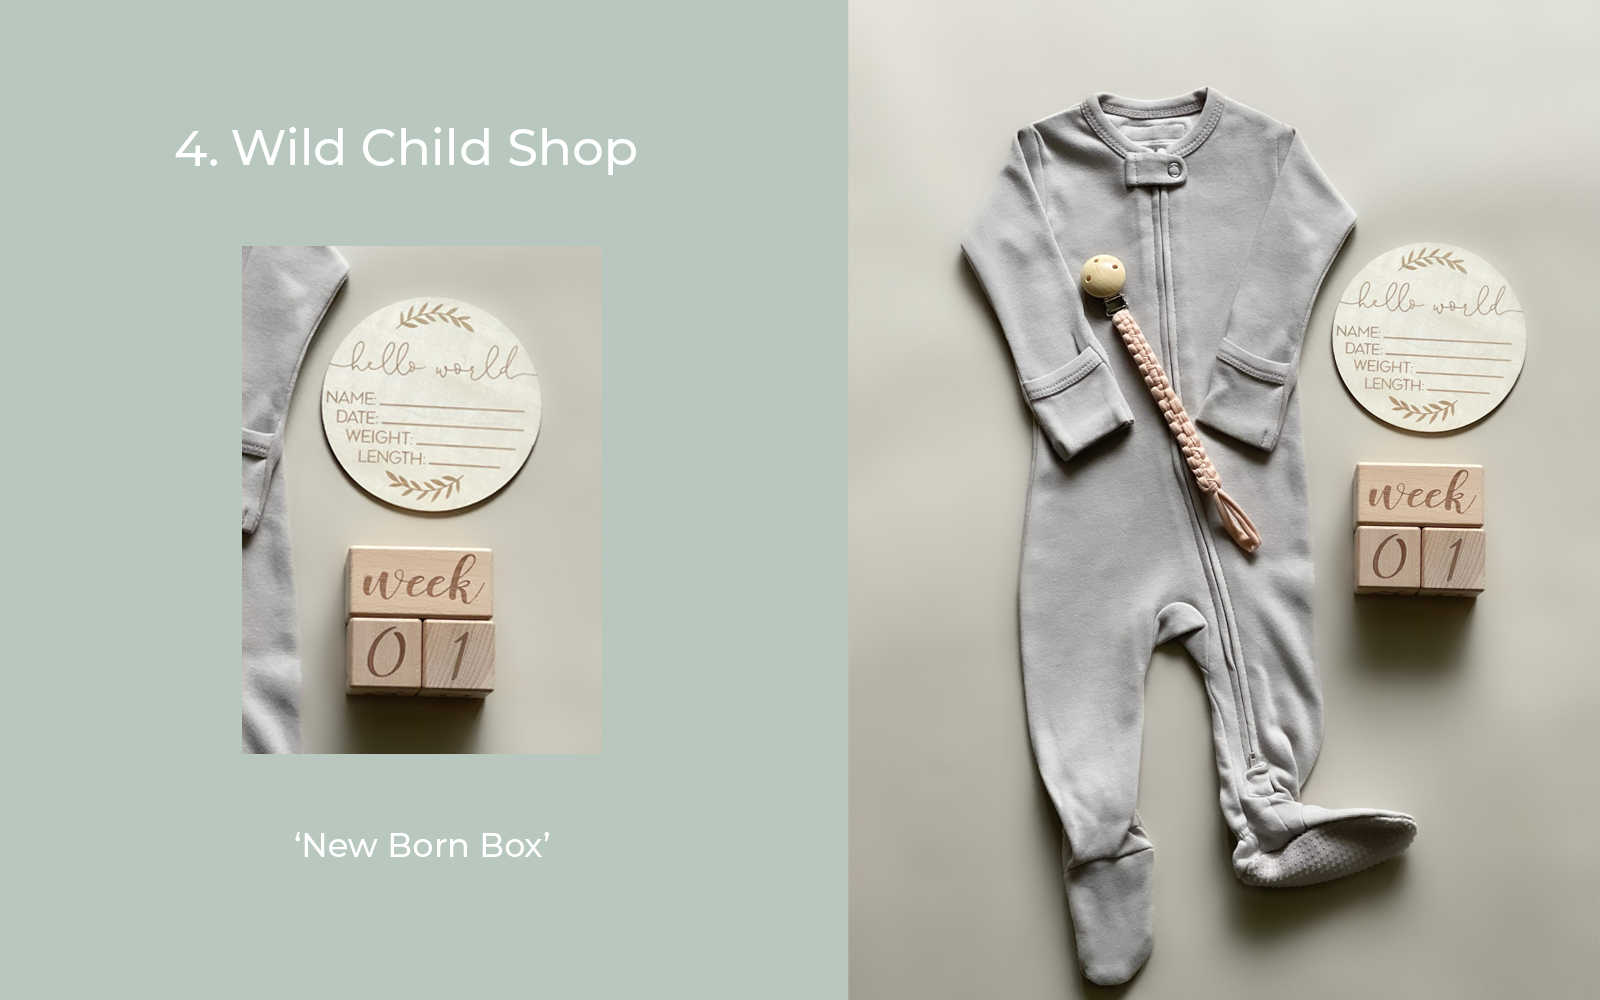 Wild Child Shop Gifts for New Mums Lulu and belle